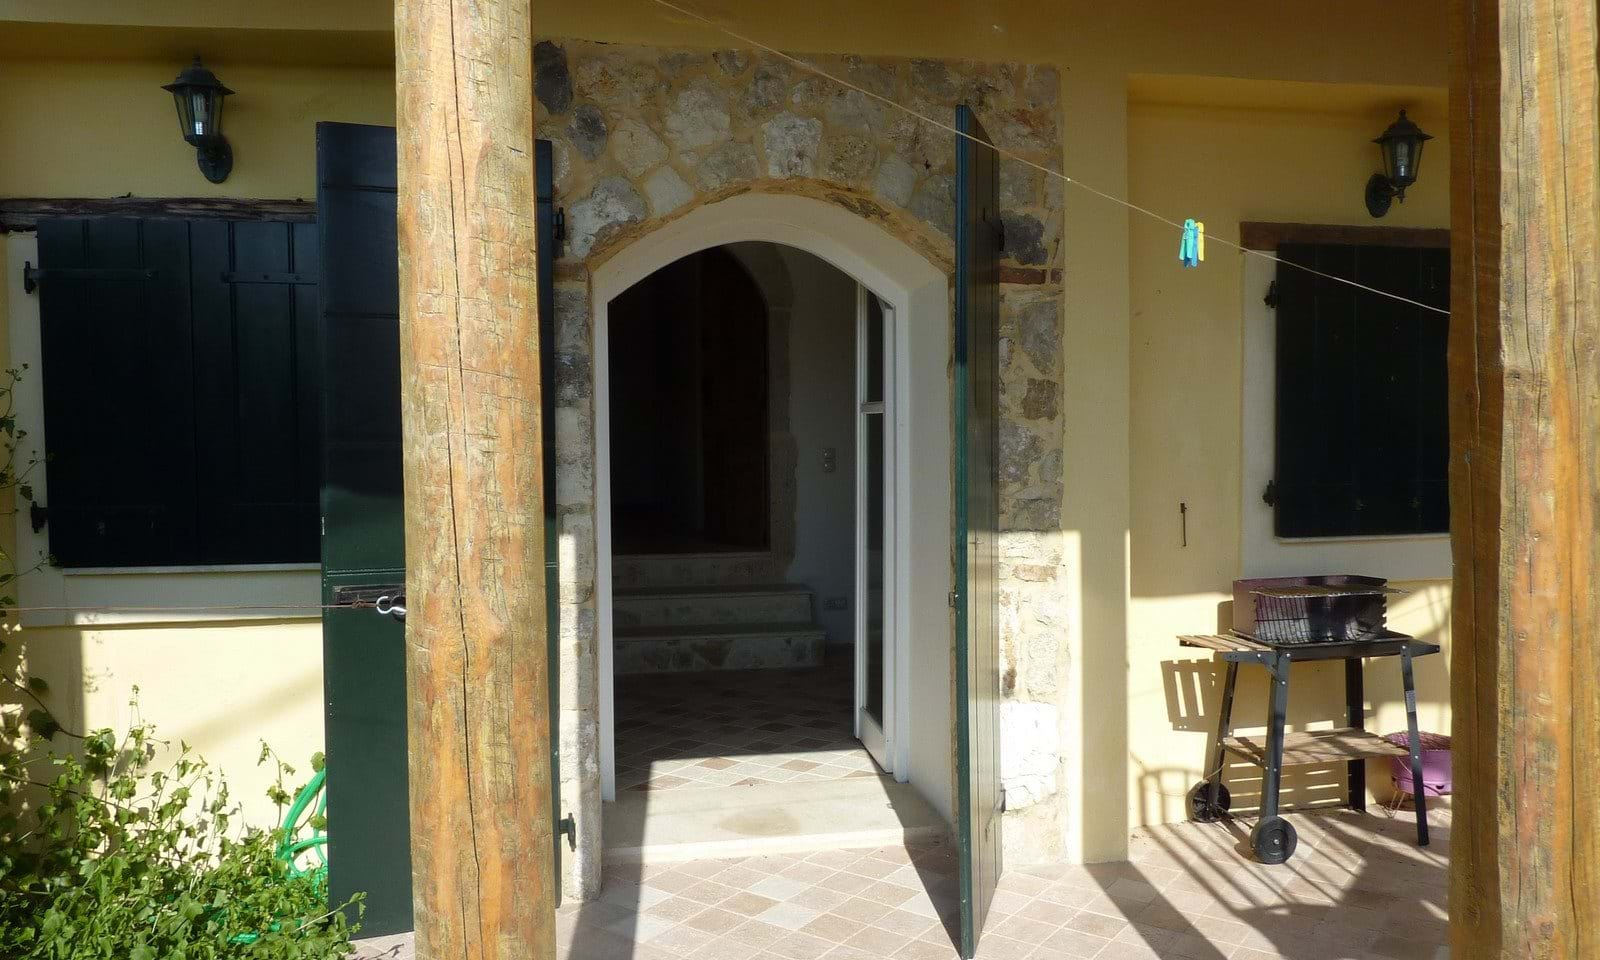 Property for sale in Ano Korakiana Corfu